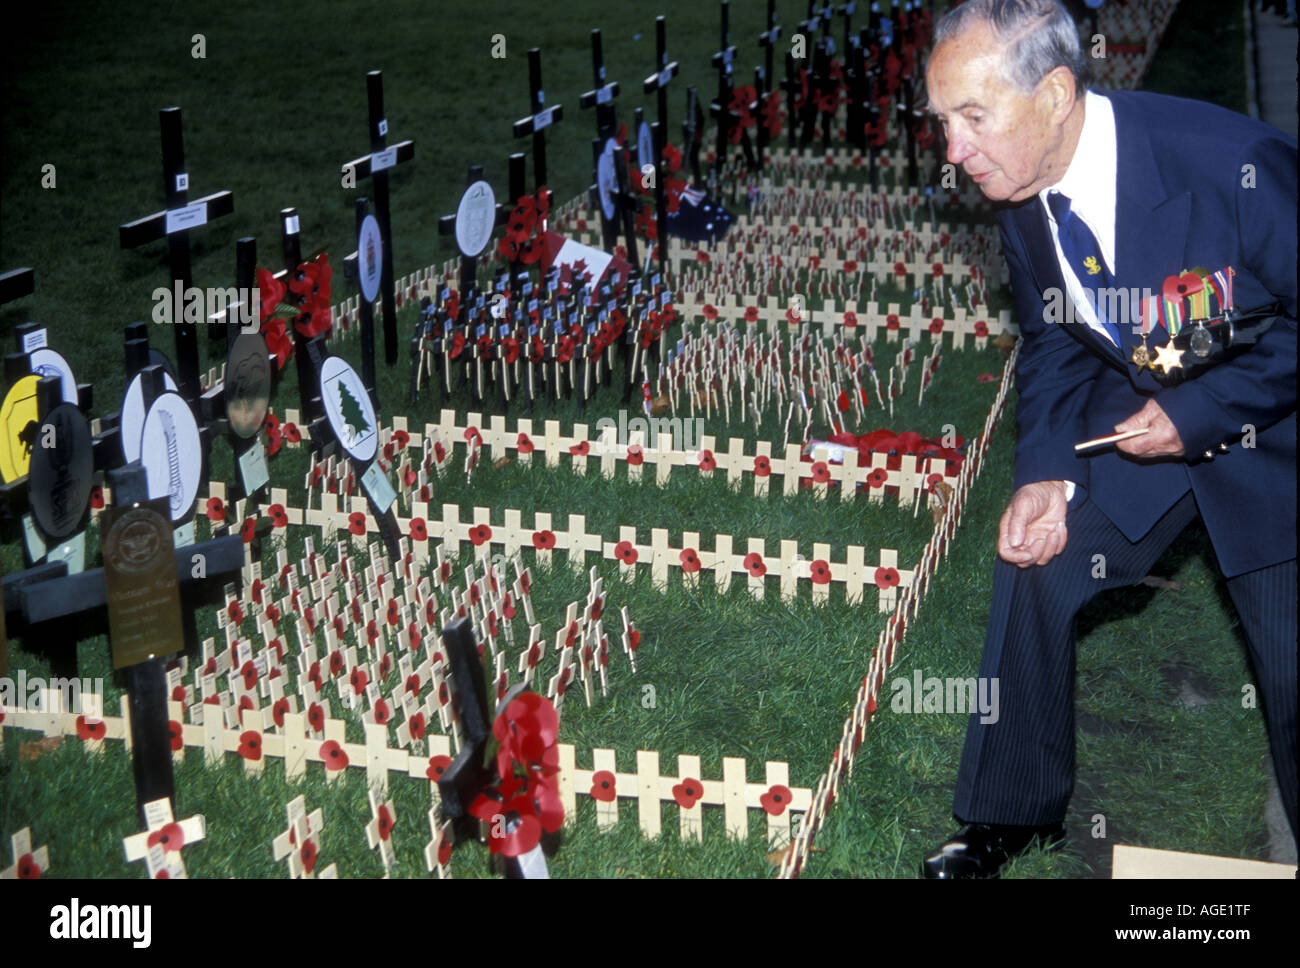 An old soldier places a cross for the war dead from his battalion on Armistice Day, Westminster Abbey lawns,  London - Stock Image